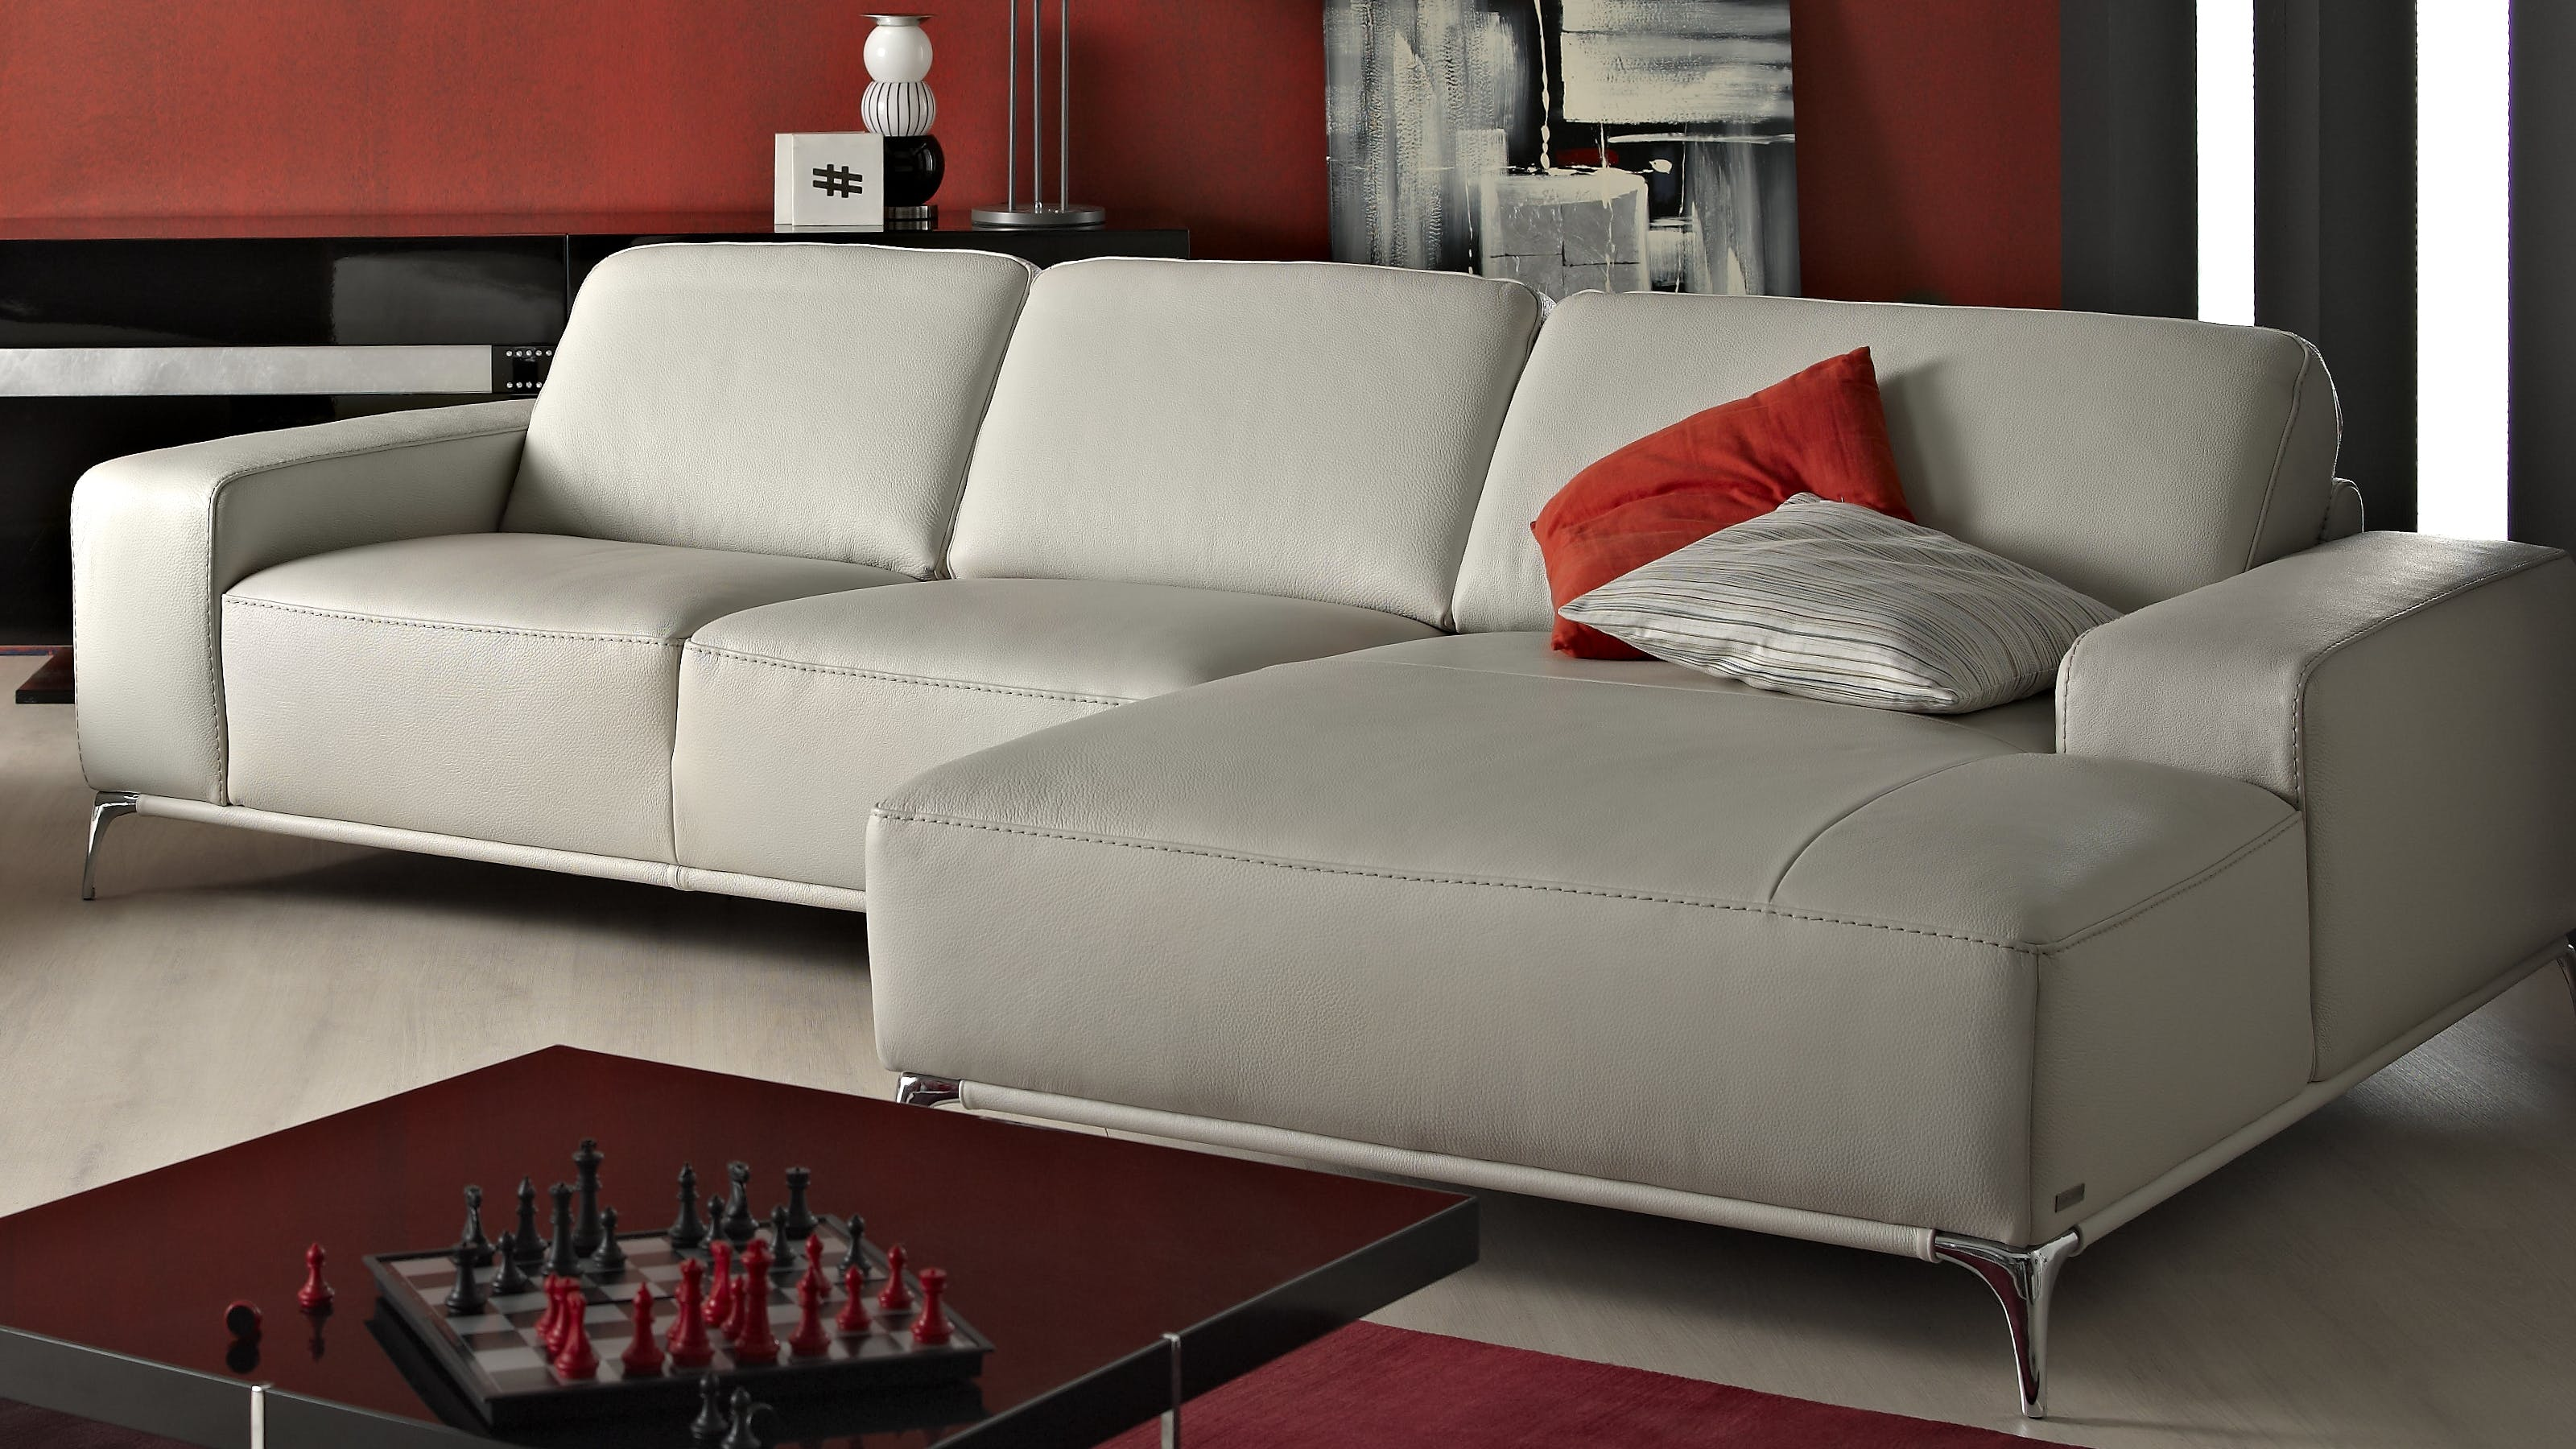 Saporini artemi full leather 2 5 seater sofa with chaise for 2 seater sofa with chaise